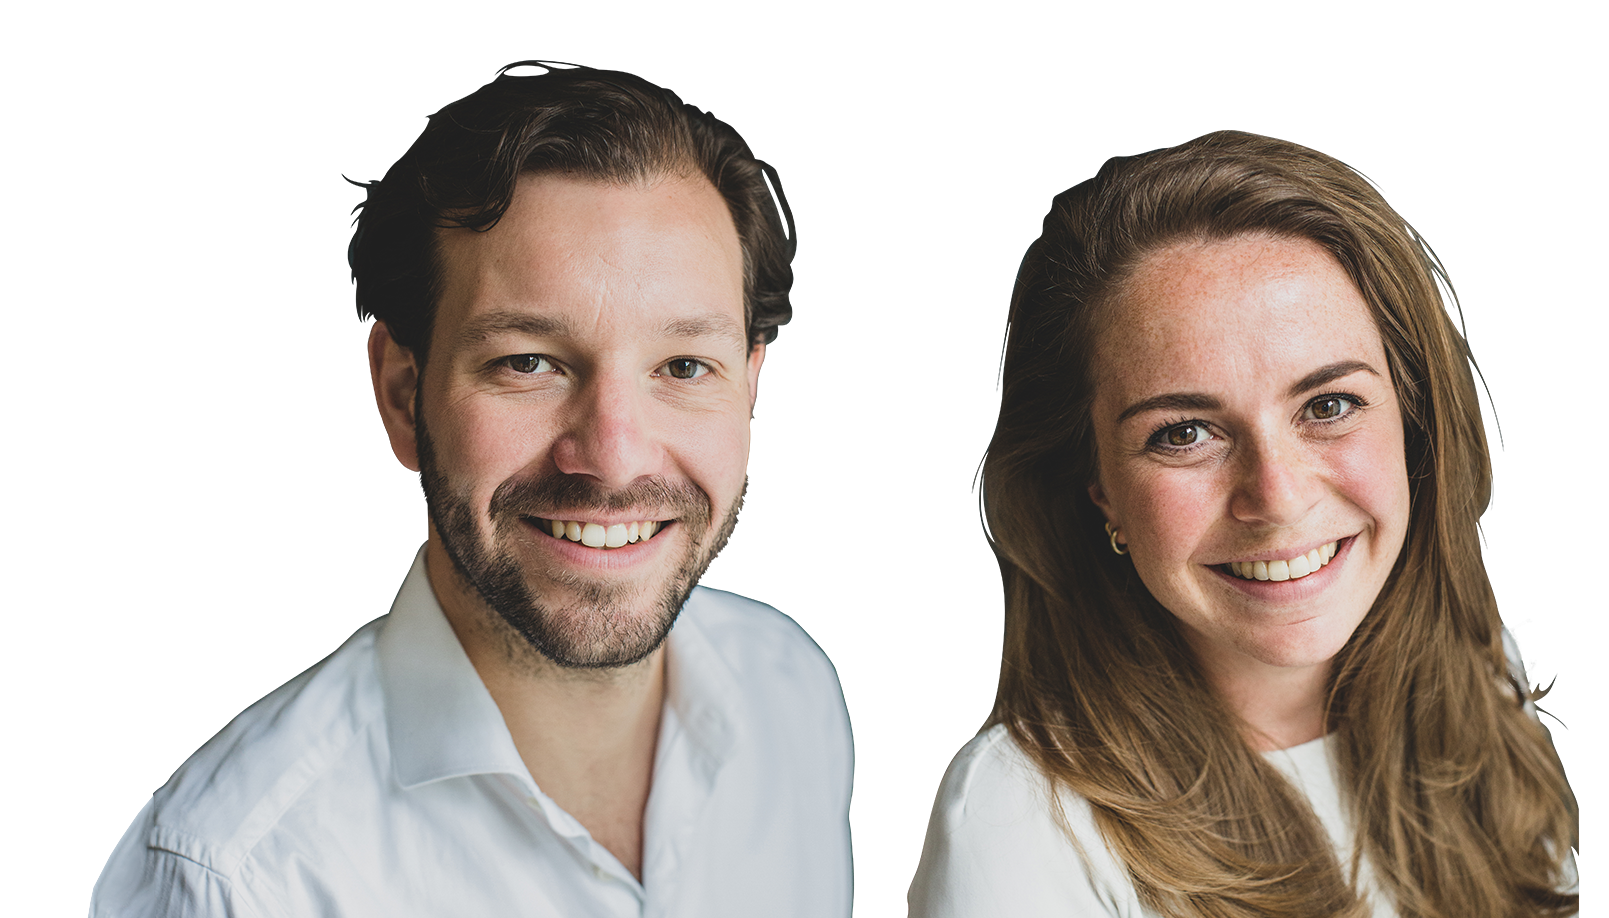 Rino Stevens, commercial en product manager en Mirjam Vis, operations development manager